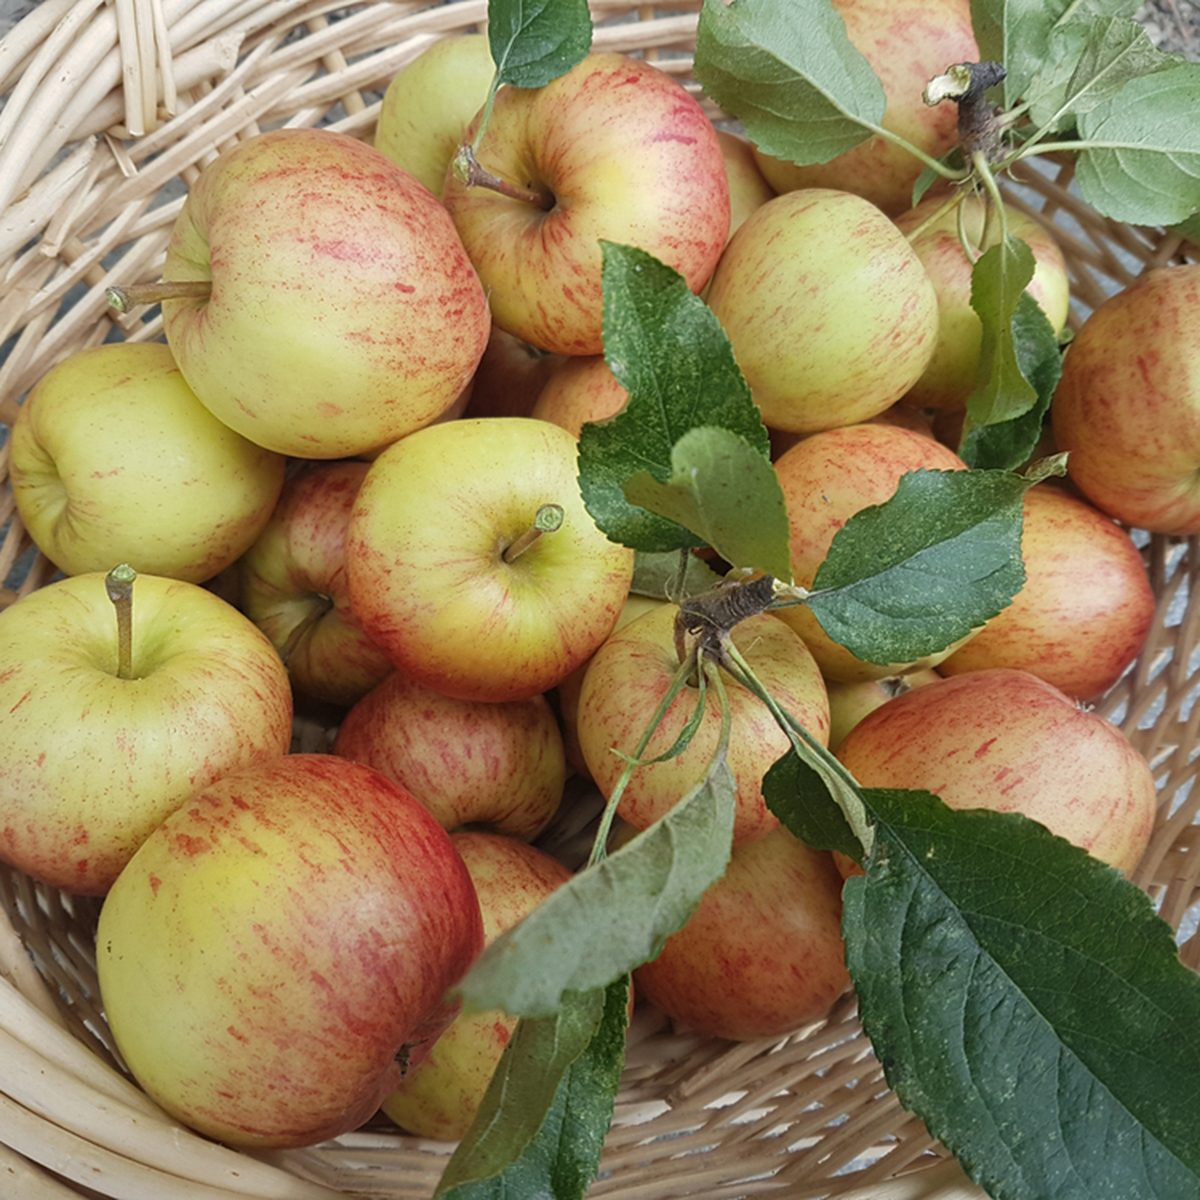 Freshly Picked Braeburn Apples in wicker basket at Harvest time in Autumn